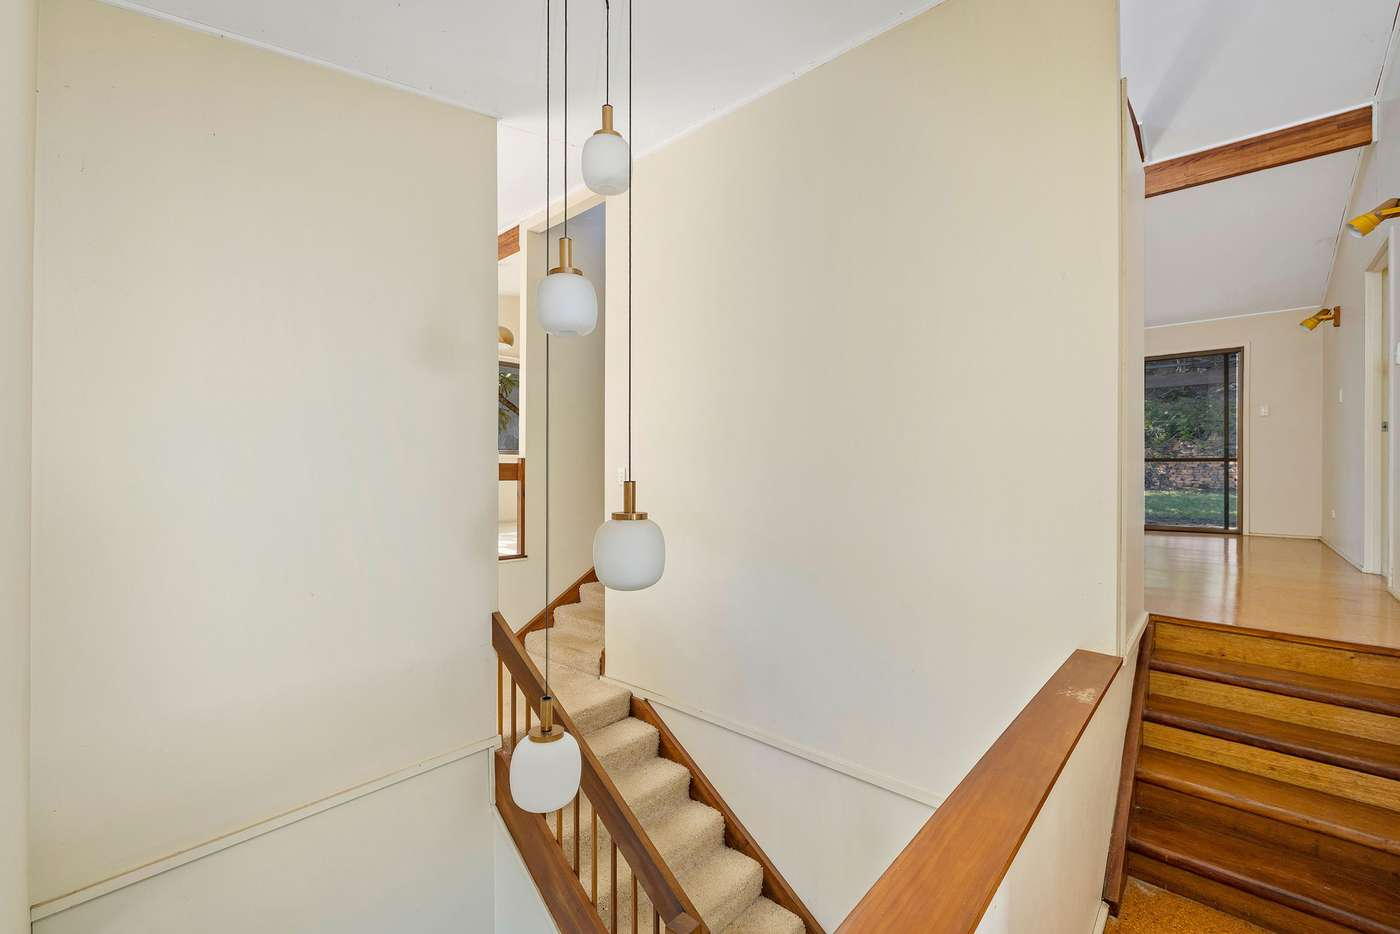 Sixth view of Homely house listing, 112 Mountain Street, Mount Gravatt QLD 4122